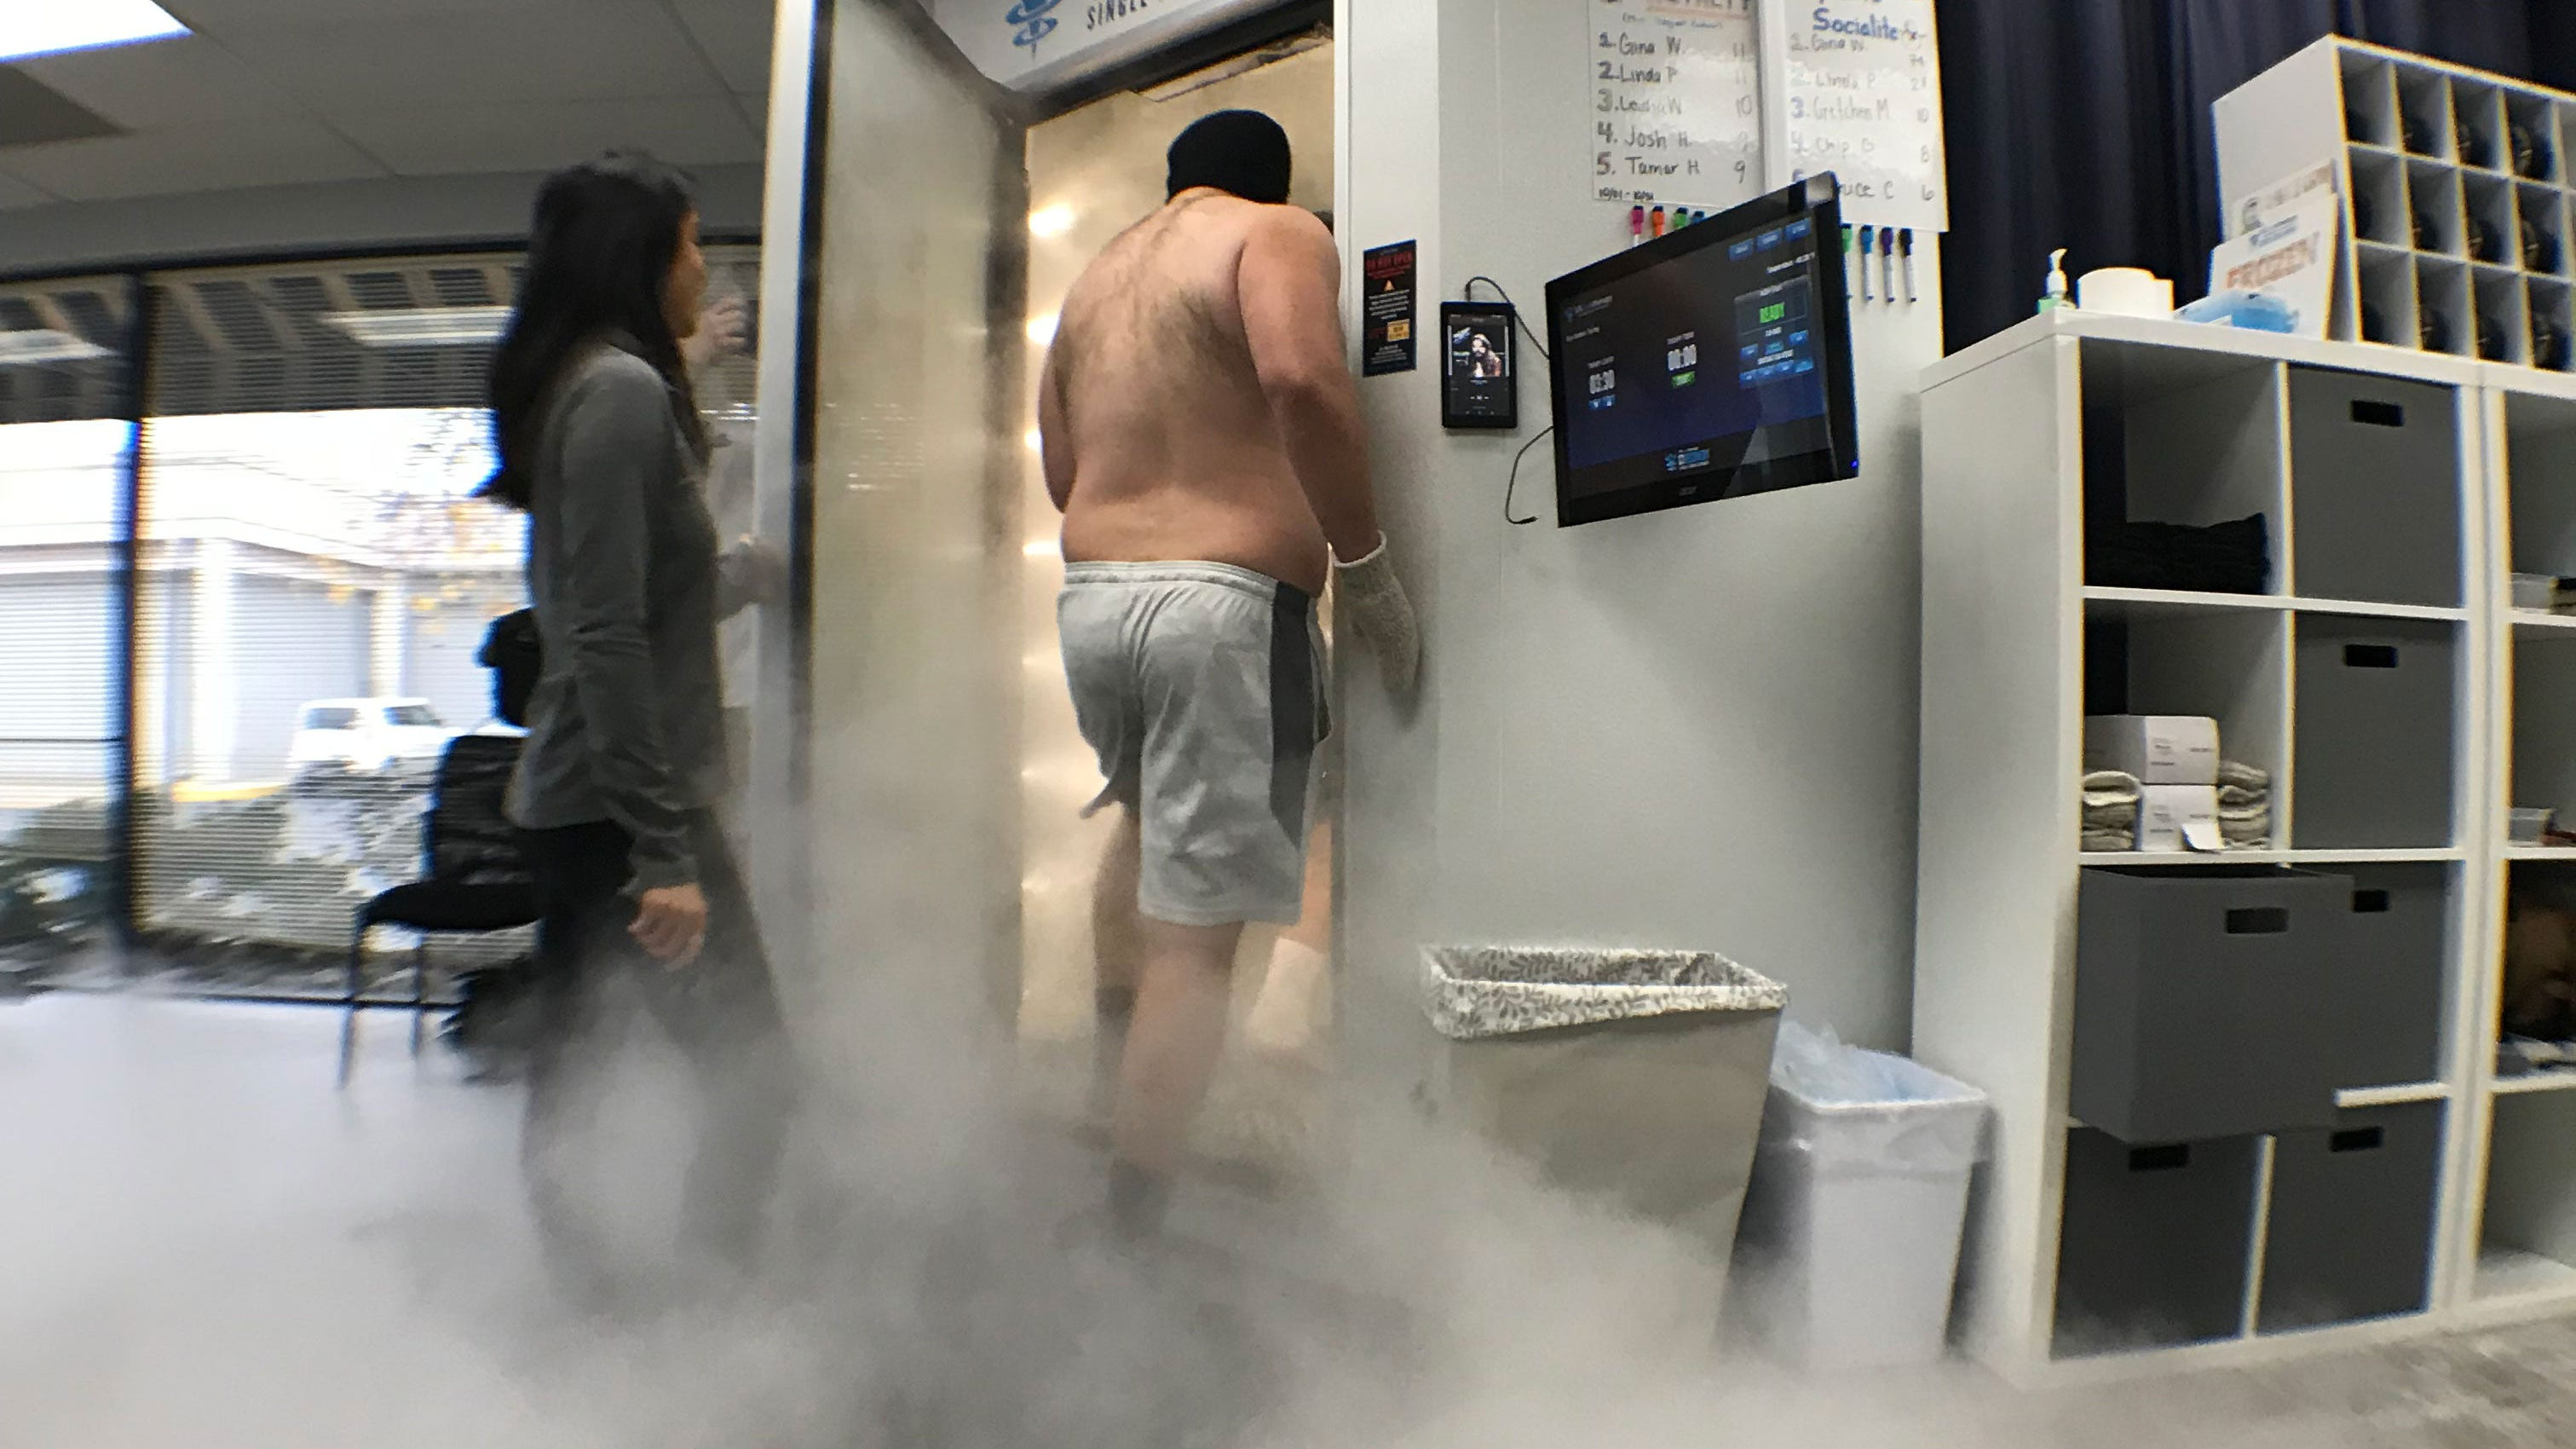 Western Michigan University offensive lineman Jon Keenoy enters the whole body cryotherapy chamber at US Cryotherapy in Portage.